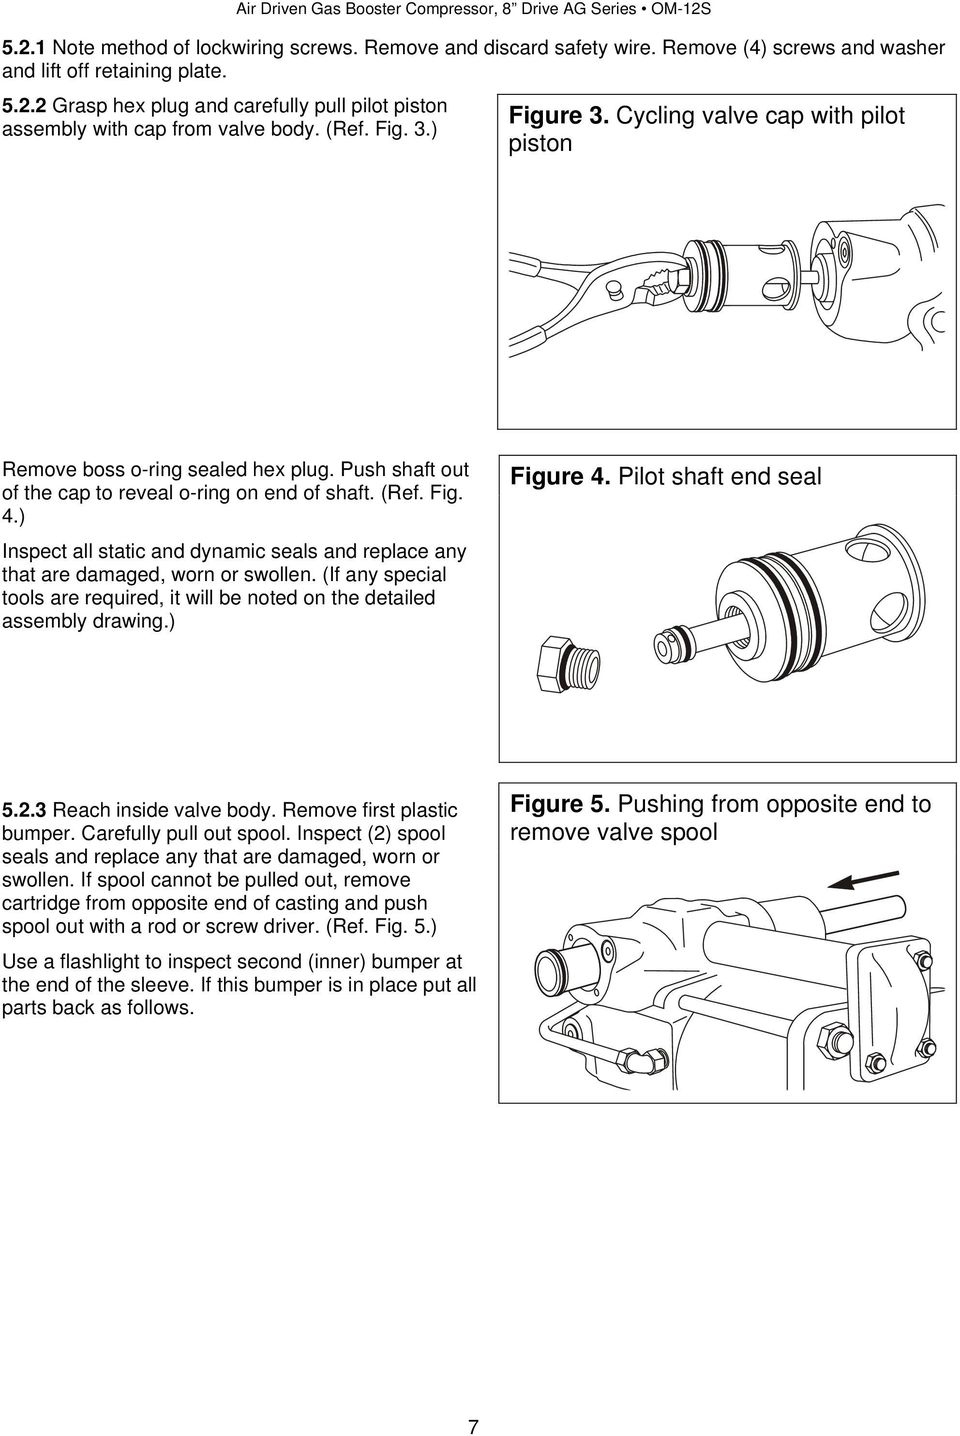 ) Inspect all static and dynamic seals and replace any that are damaged, worn or swollen. (If any special tools are required, it will be noted on the detailed assembly drawing.) Figure 4.